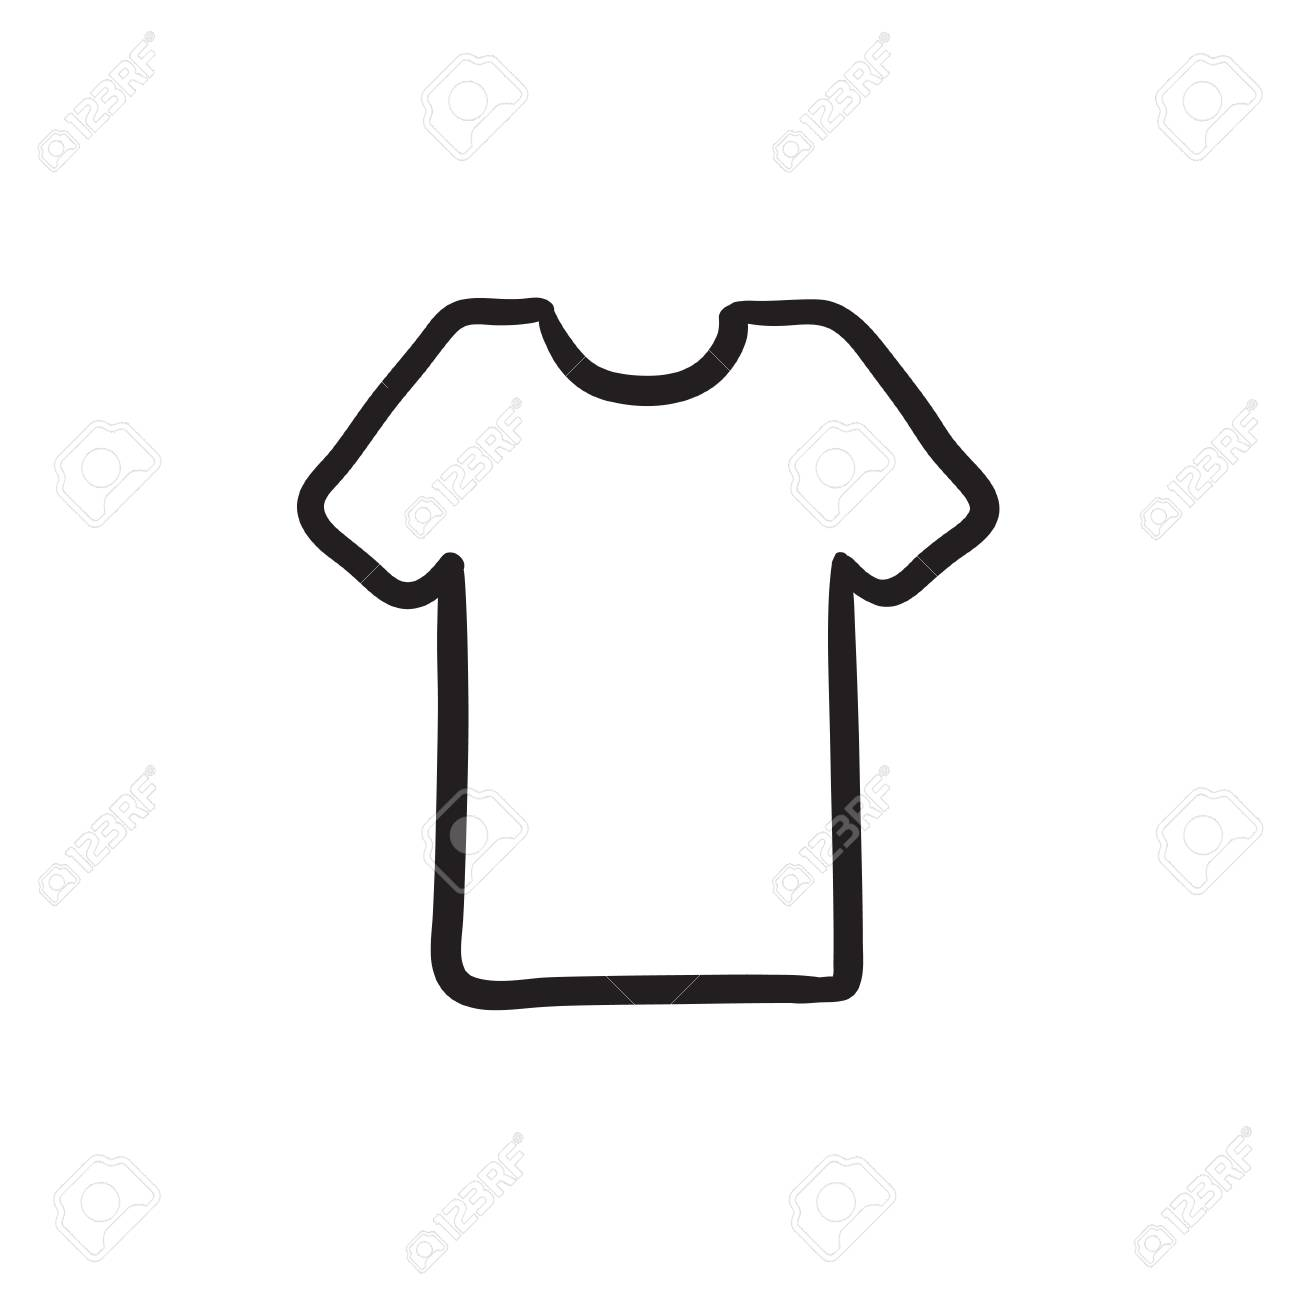 t shirt vector sketch icon isolated on background hand drawn royalty free cliparts vectors and stock illustration image 72497226 t shirt vector sketch icon isolated on background hand drawn